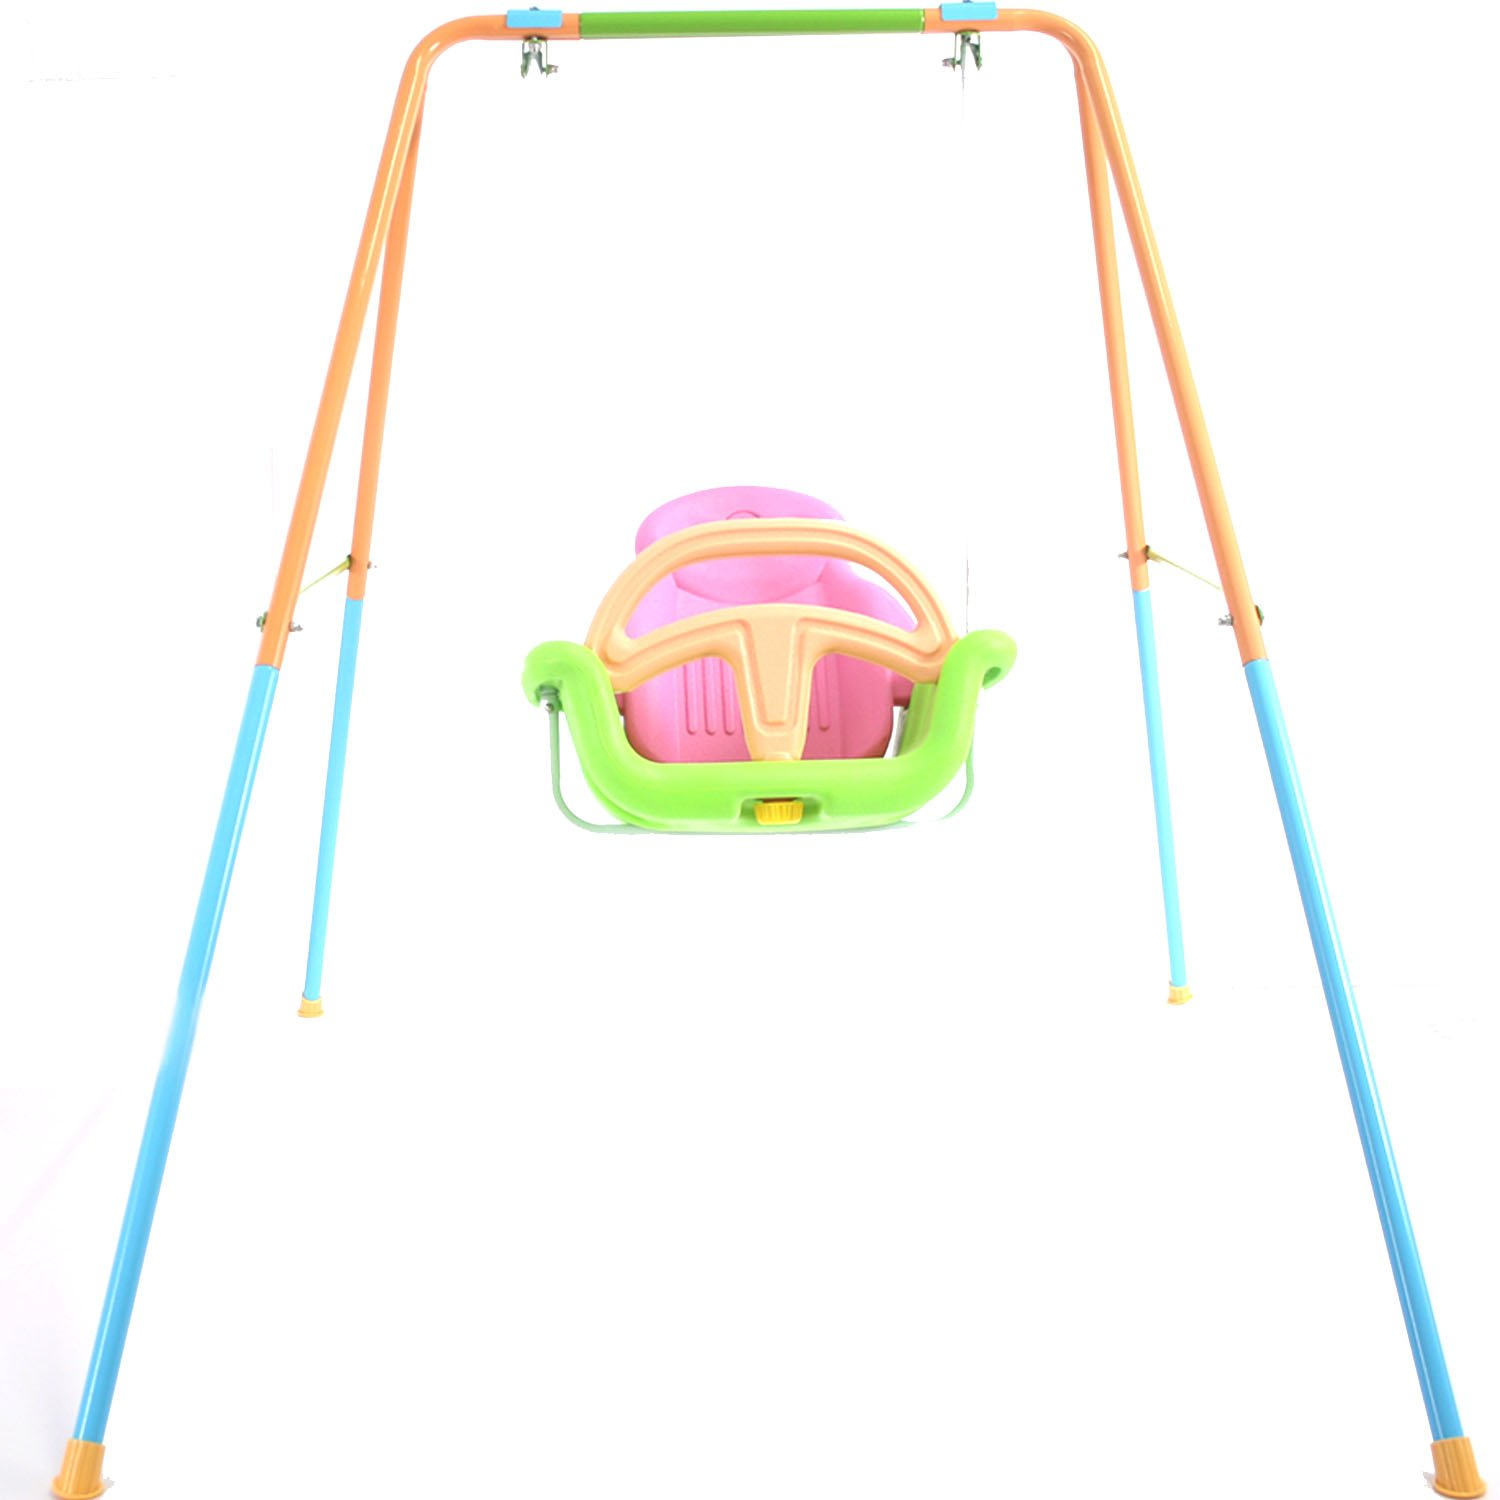 Toddler Baby Teenager Swing Playset for Yard Outdoor Indoor with Adjustable Height by HSTOY